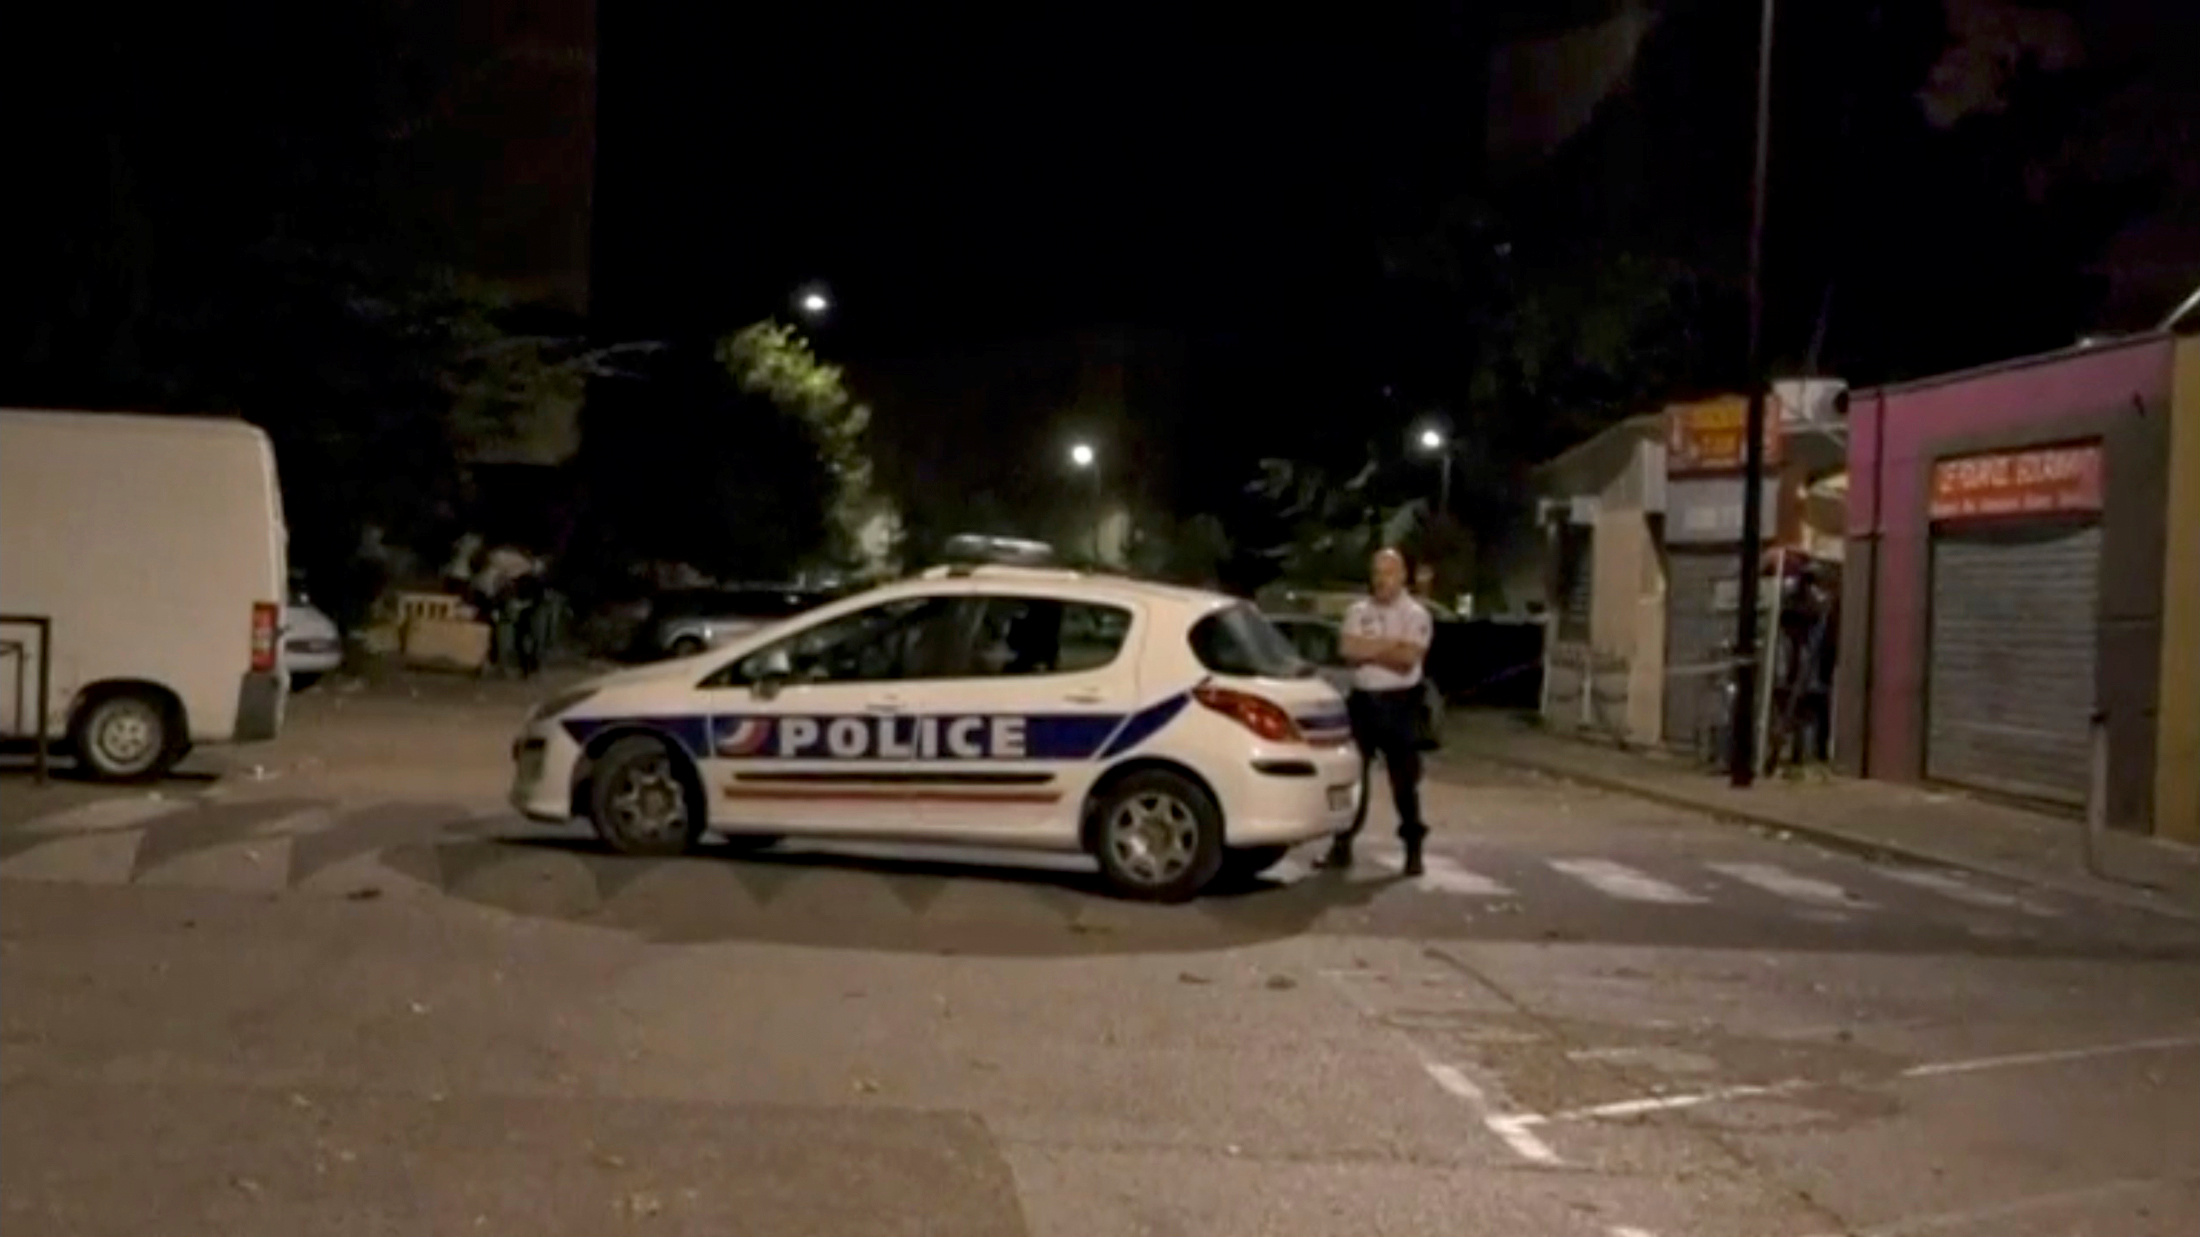 A police officer stands guard on a street near a scene of a shooting in front of a mosque, in this still image from video, in Avignon, France July 3, 2017.